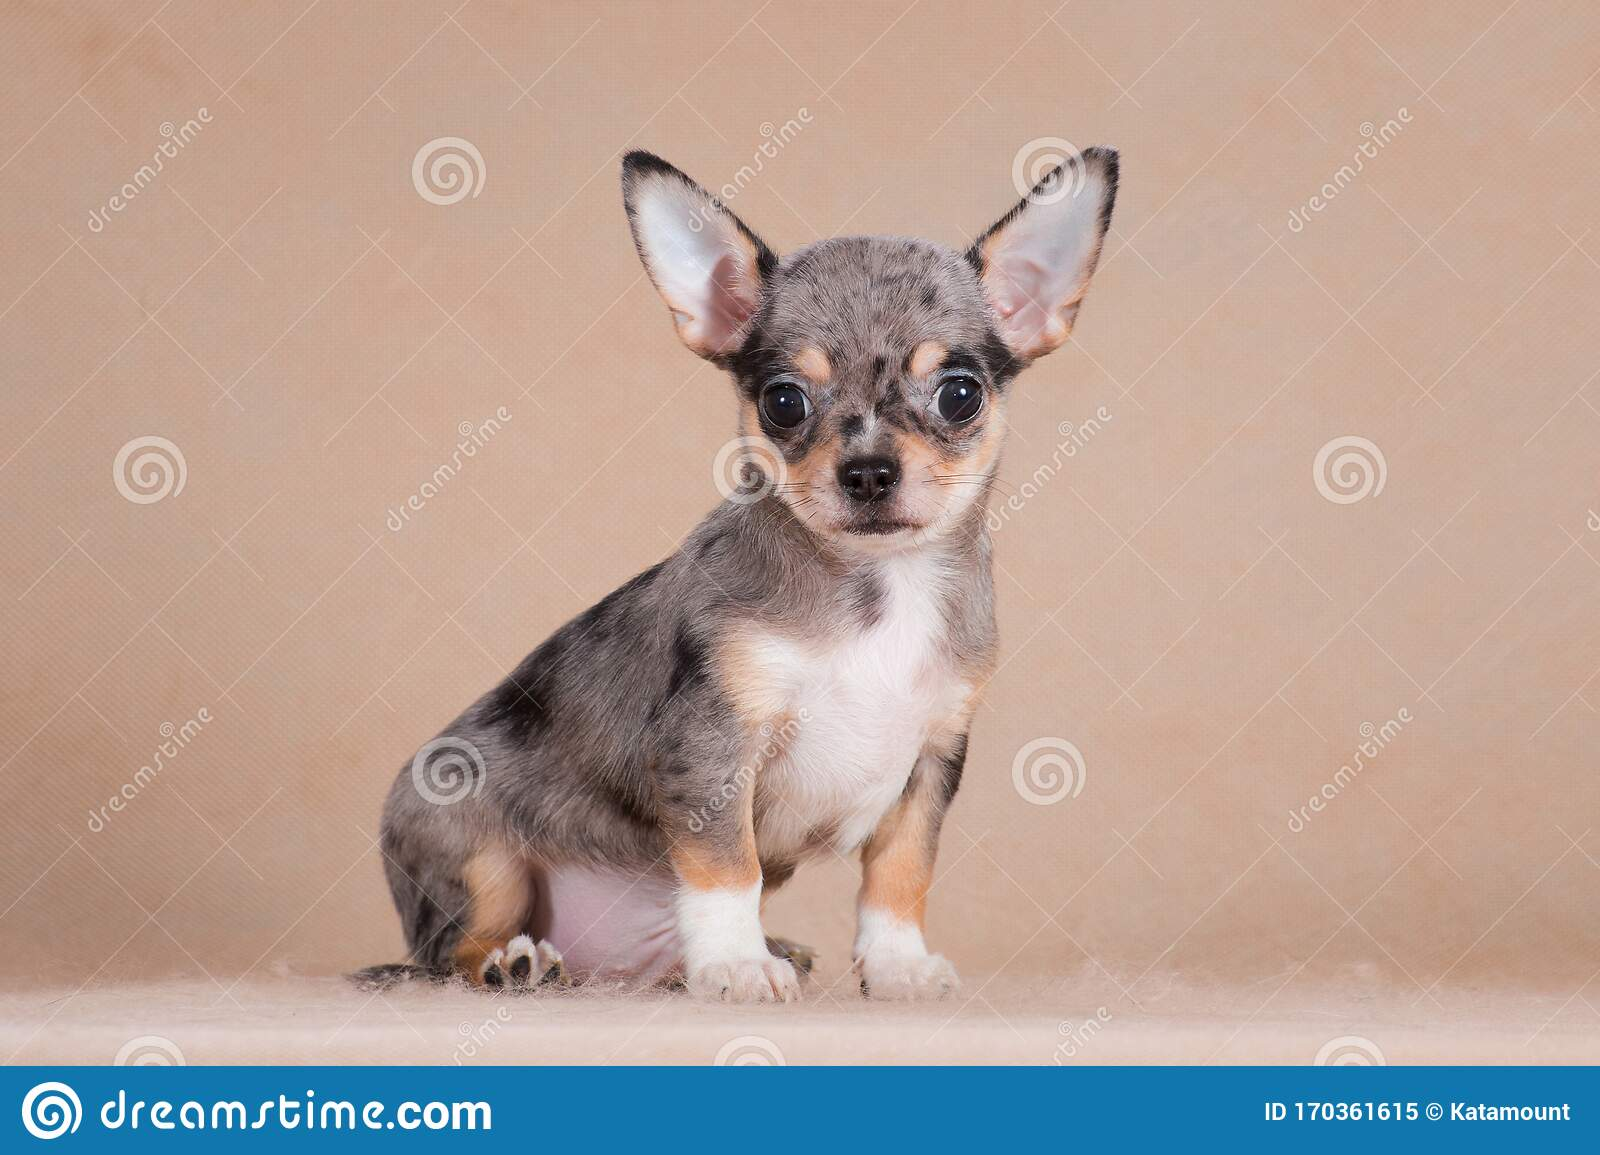 Merle Chihuahua Puppy Sitting In The Studio On A Beige Background Stock Image Image Of Sitting Companion 170361615